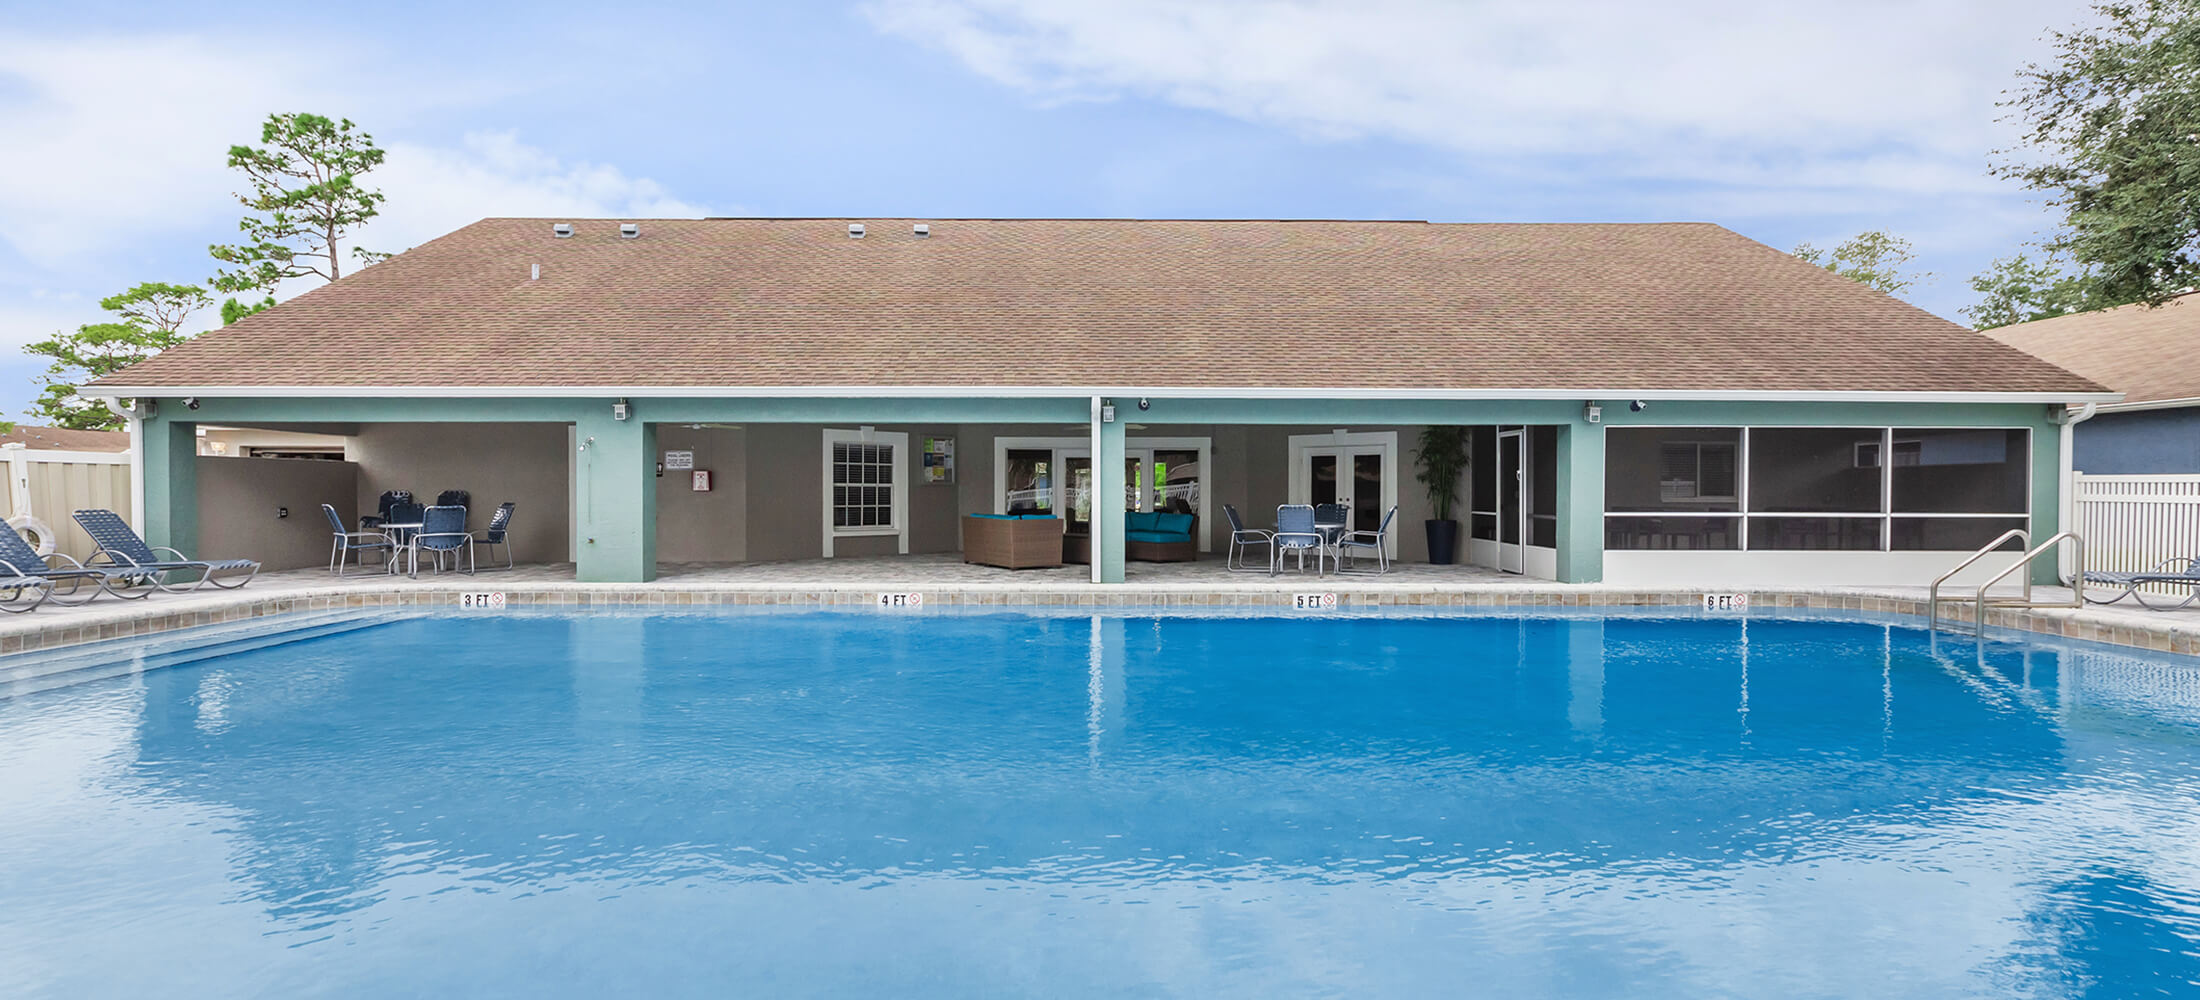 Ariel Springs - Apartments in Spring Hill, FL on swimming pool plans florida, kitchen cabinets florida, townhouse plans florida, open floor plans florida, cottage plans florida,